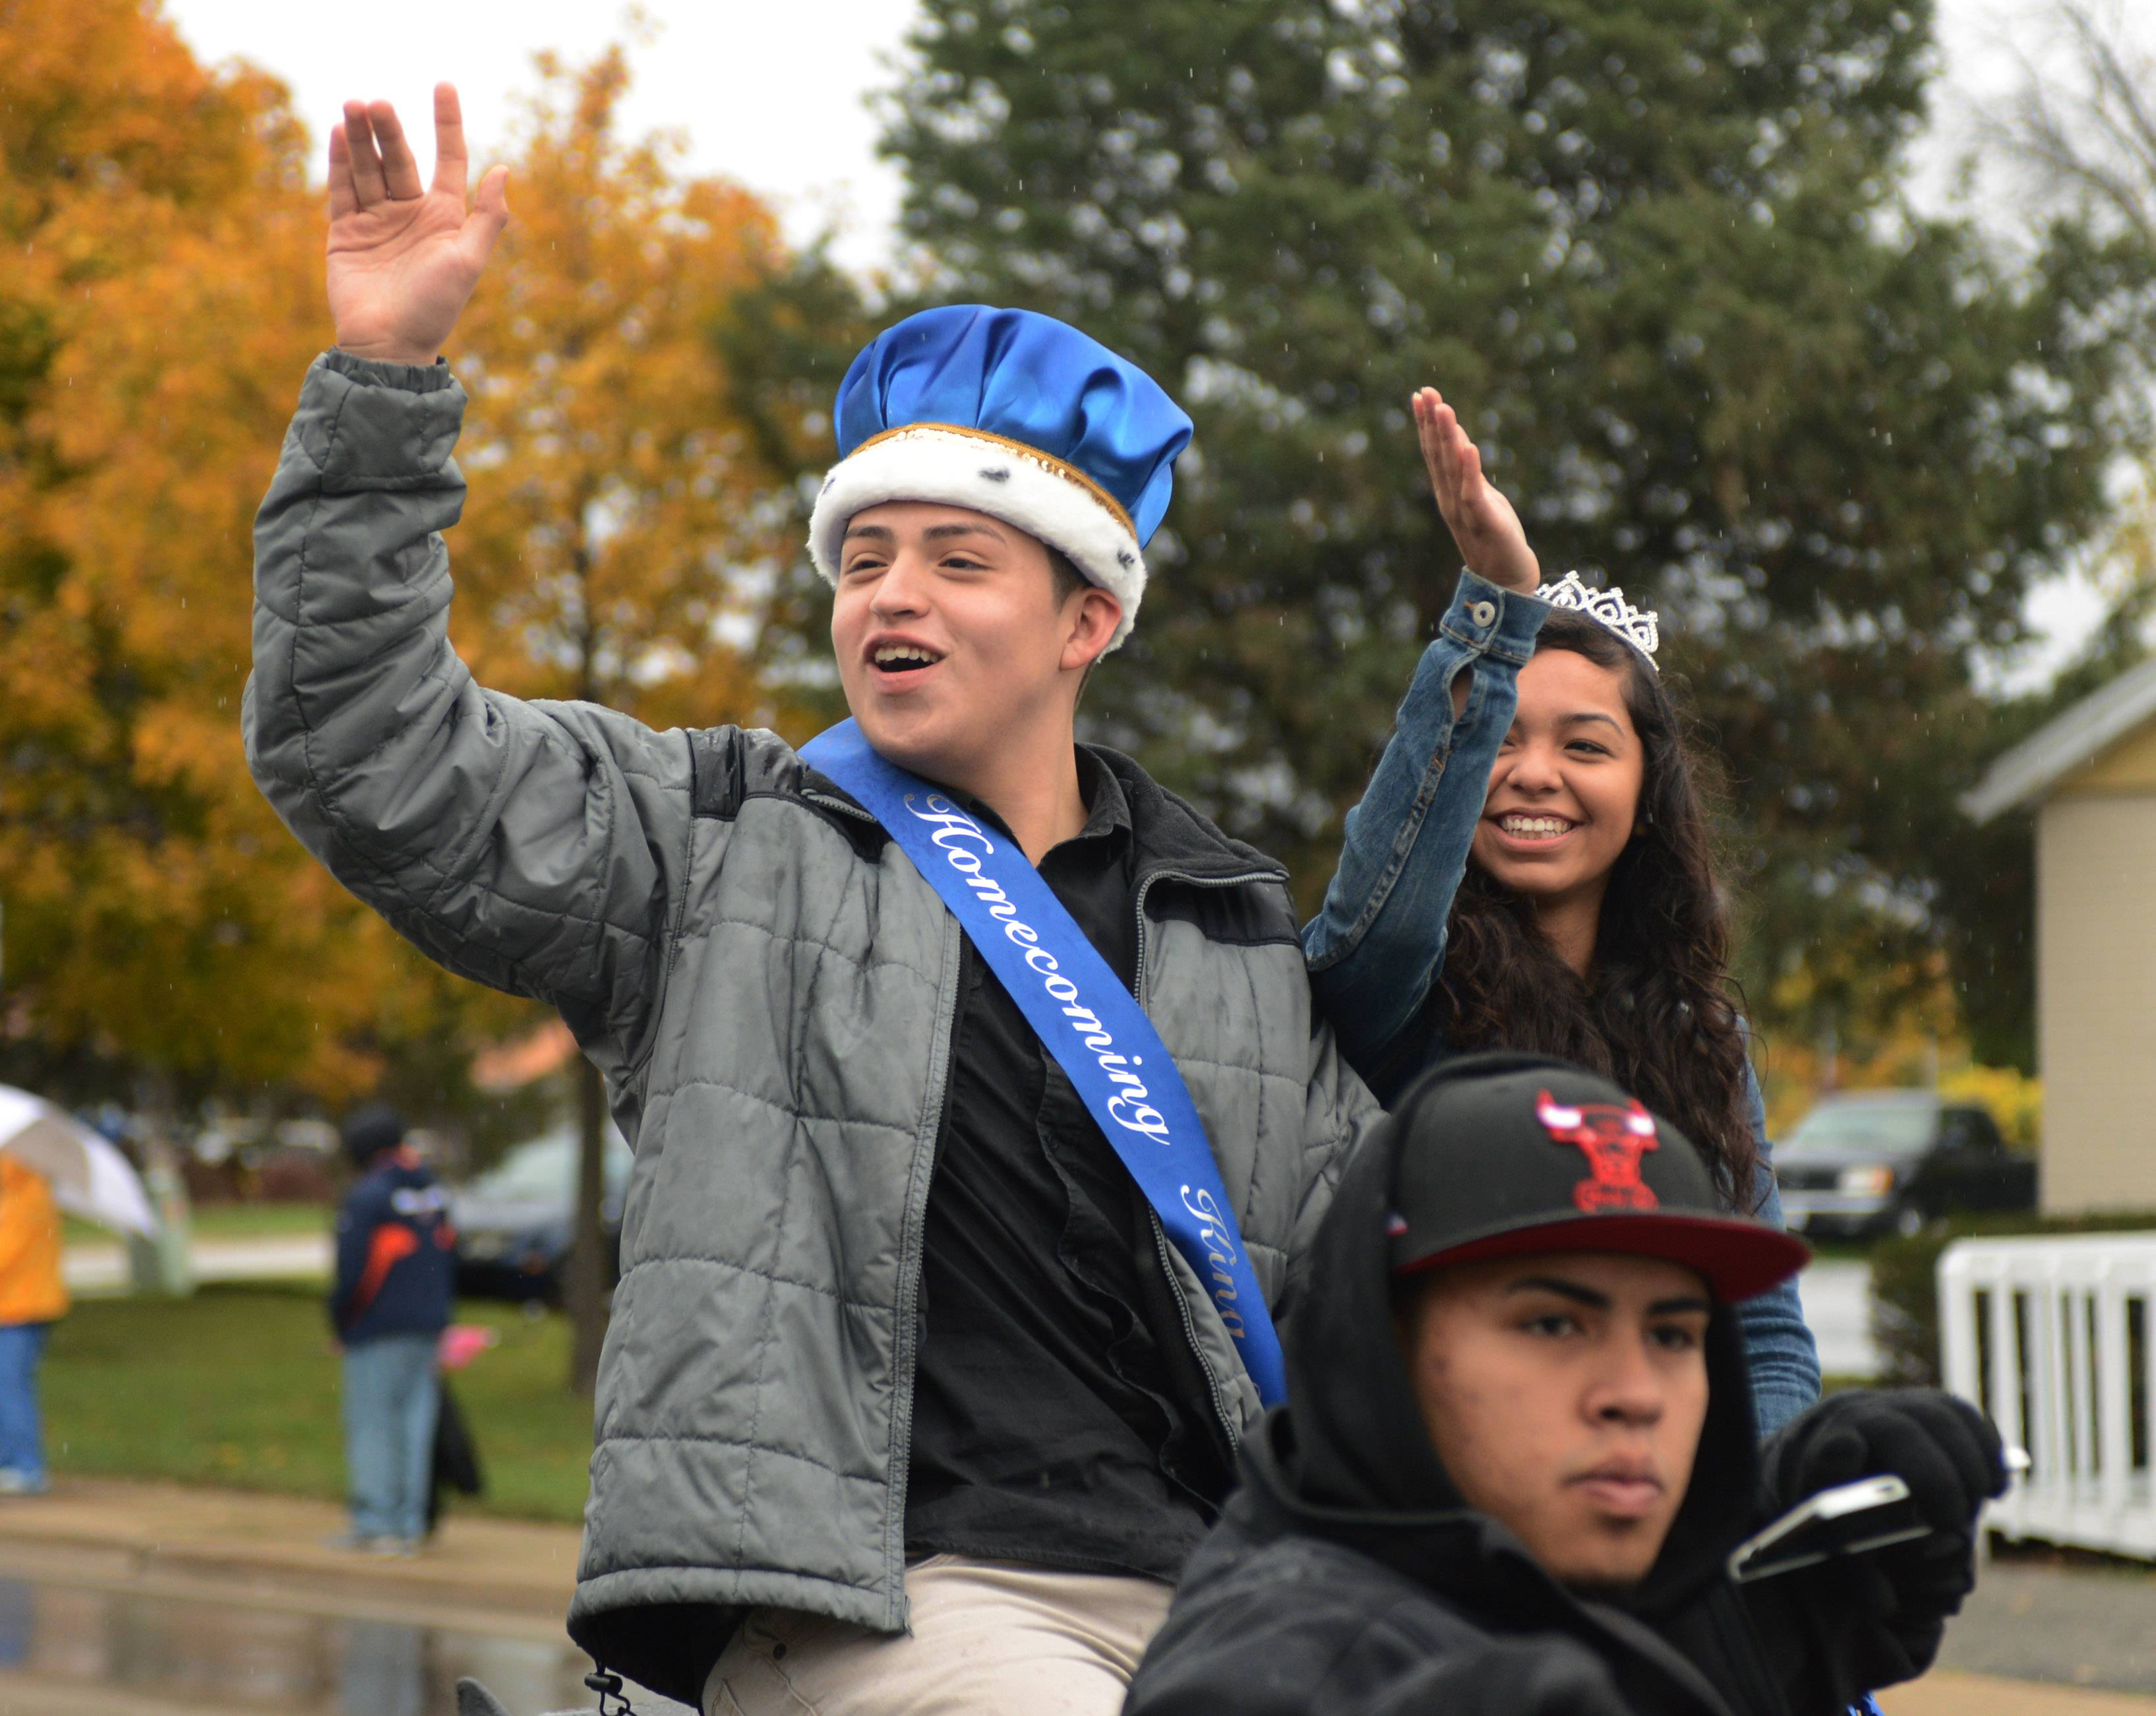 Round Lake High School's homecoming king Alsonso Herrera and queen Jenny Juarez, both 17 of Round Lake Park, ride in style during Saturday's homecoming parade down Cedar Lake Road.